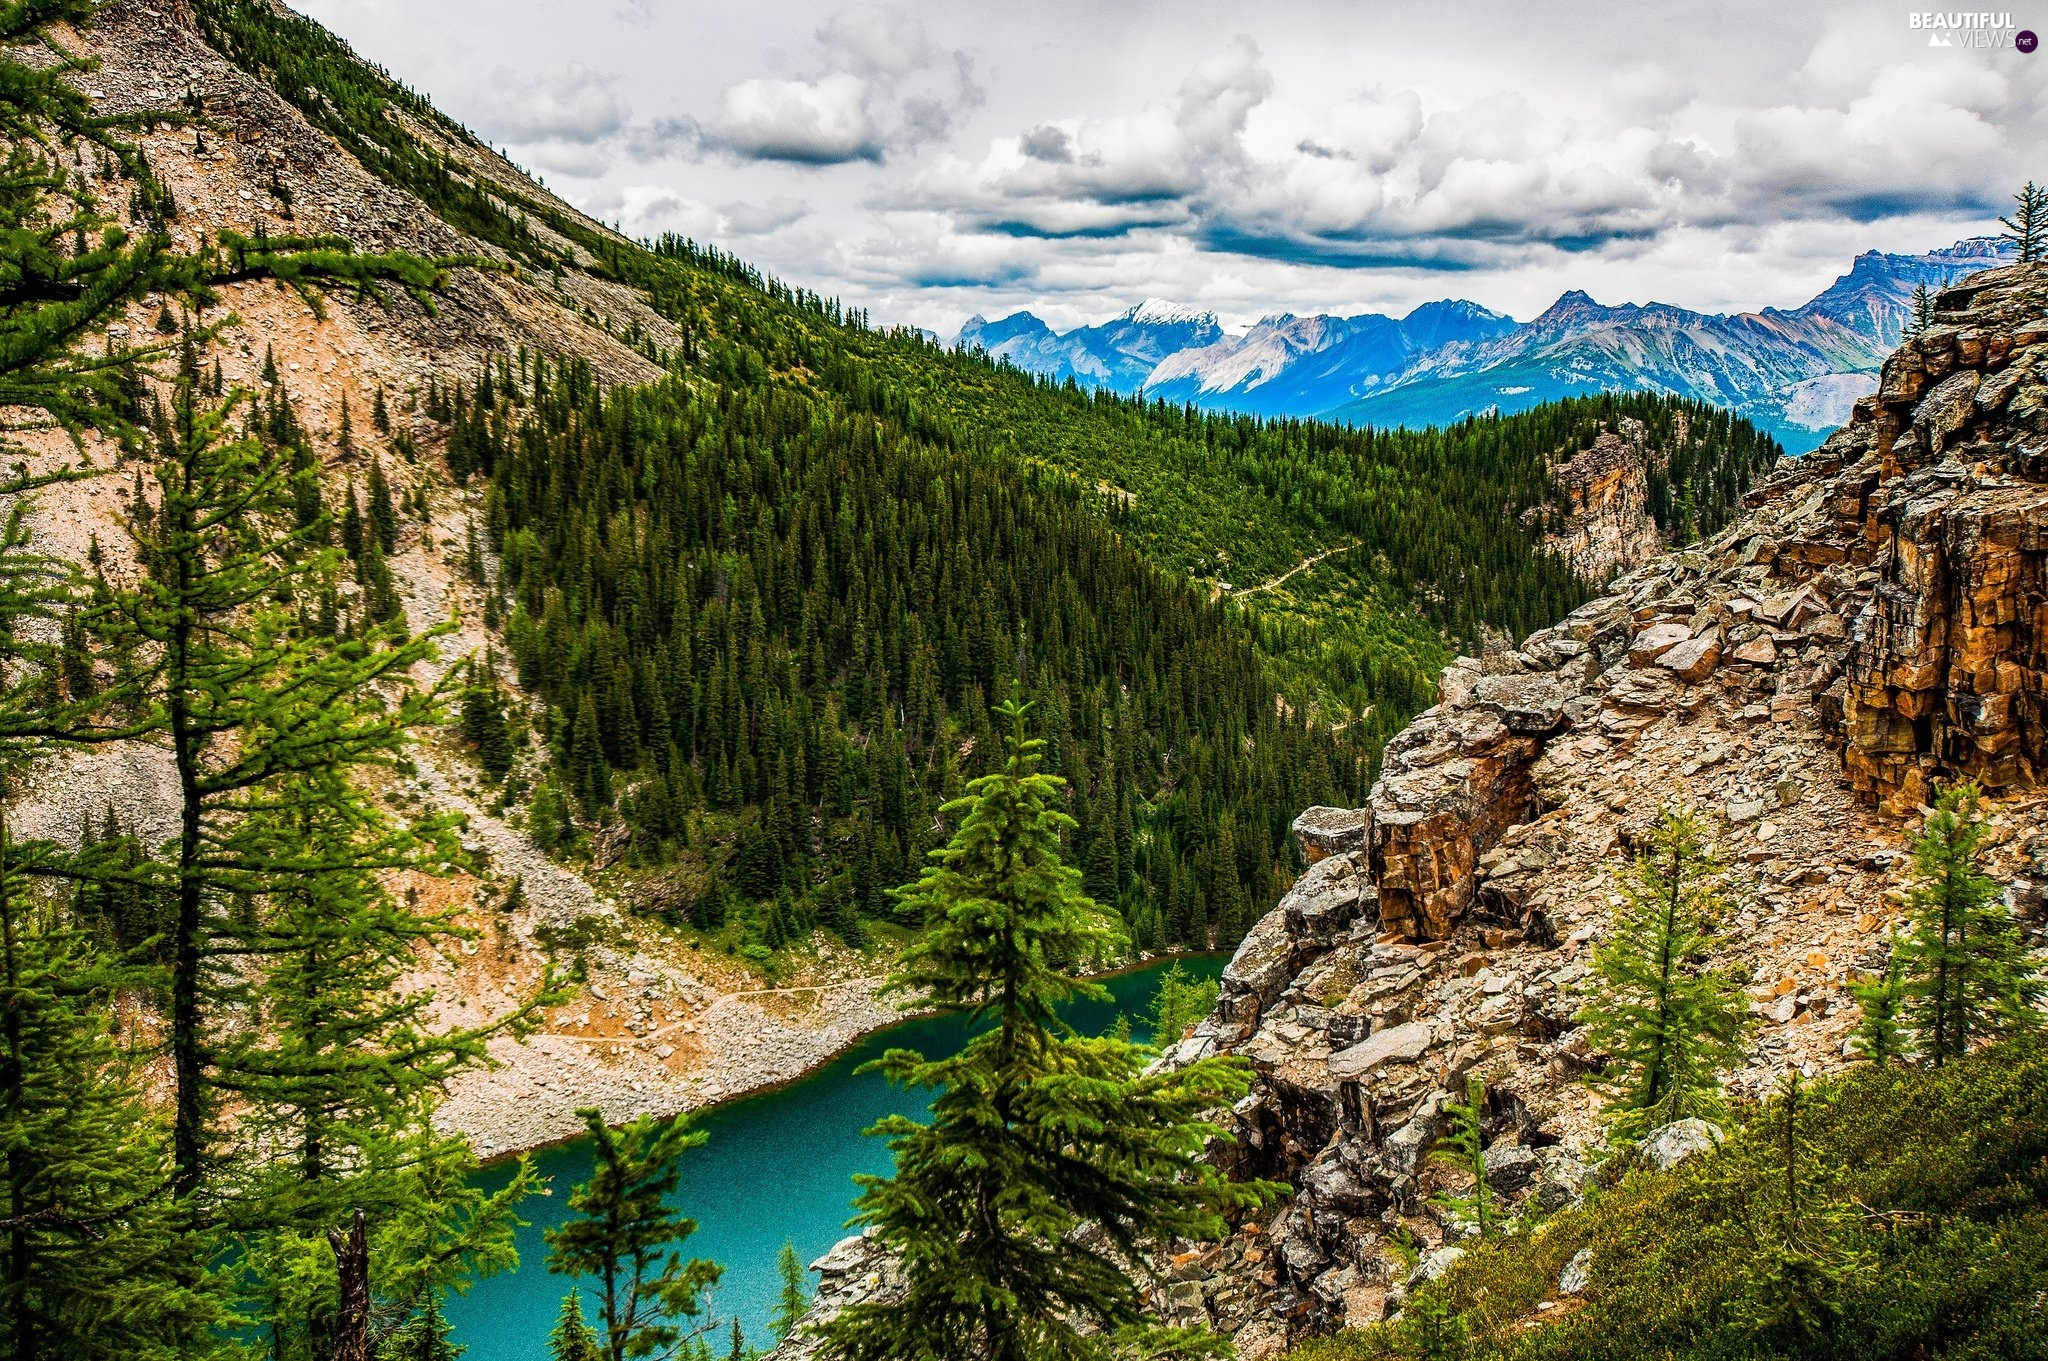 canyon, forest, Clouds, lake